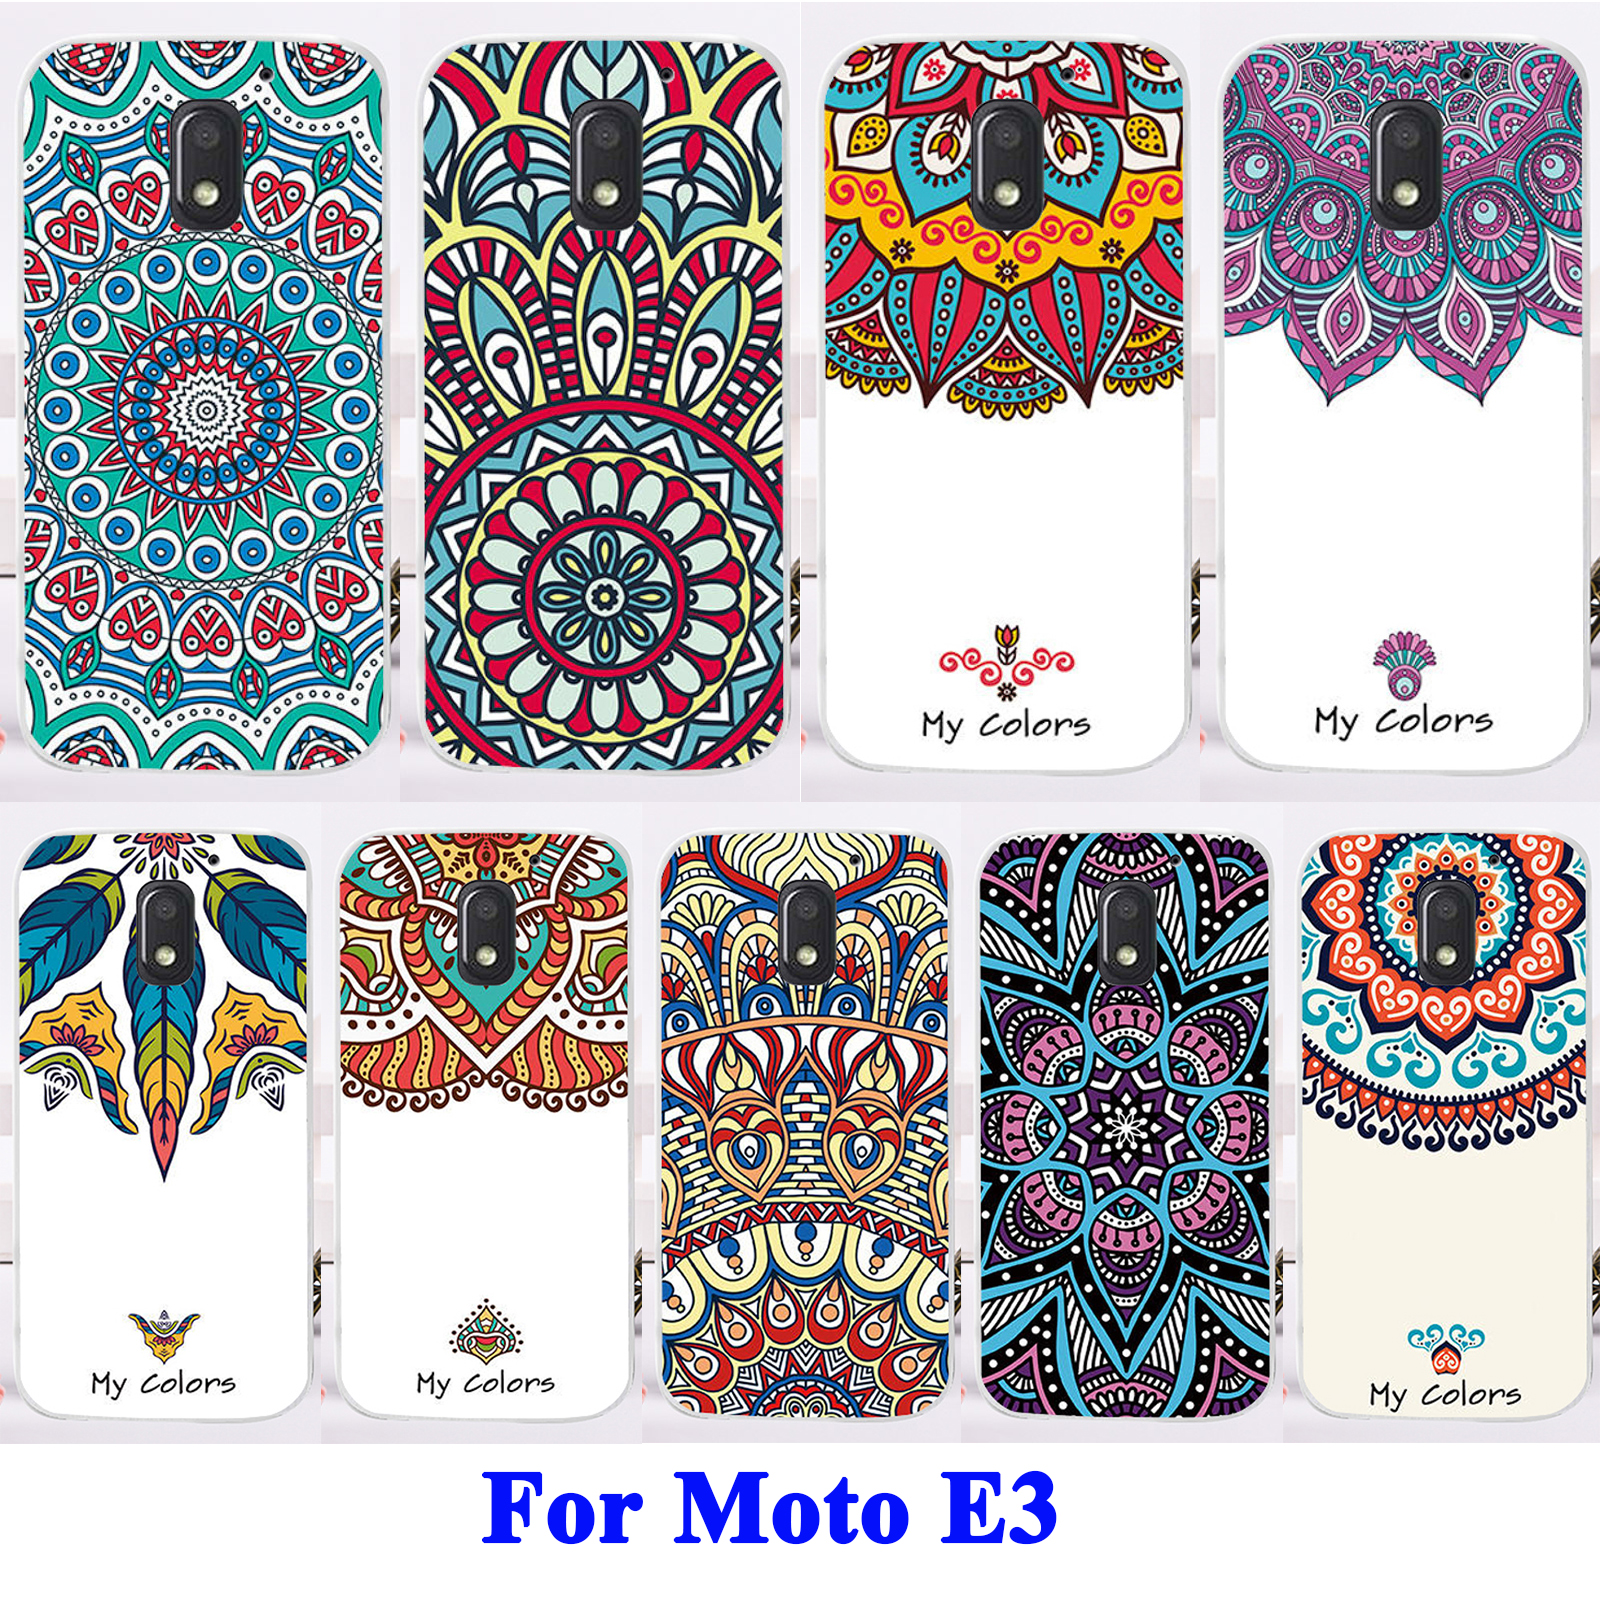 Mobile Phone Skins For Motorola Moto E3 Case Durable Hard Shell Case Painted Western Europe L Series Protective Cover Case Coque